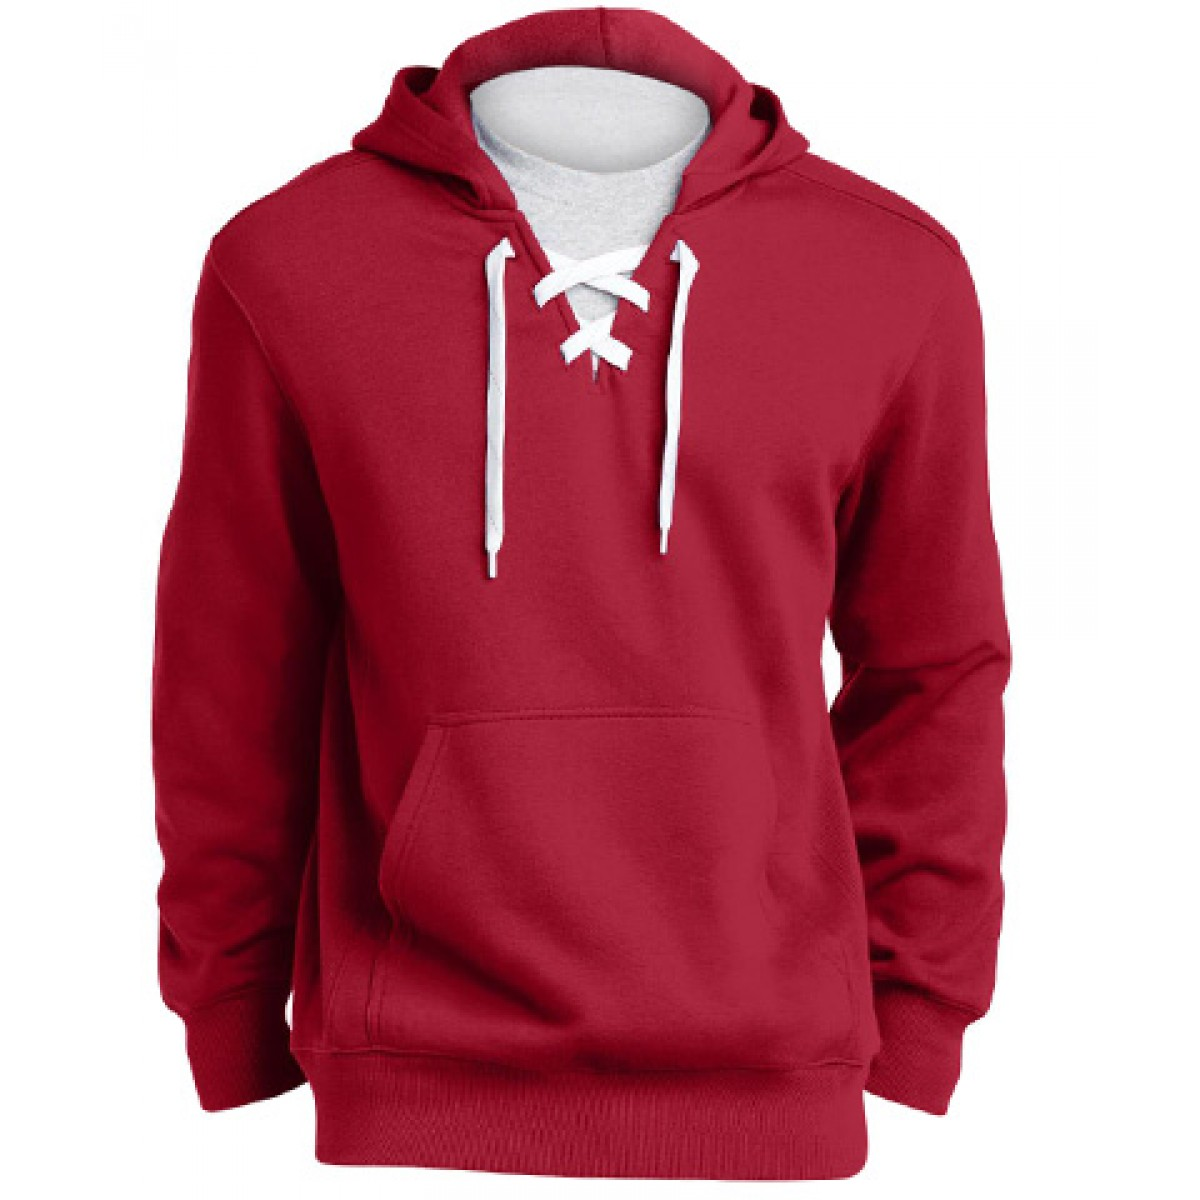 Lace Up Pullover Hooded Sweatshirt-Red-M